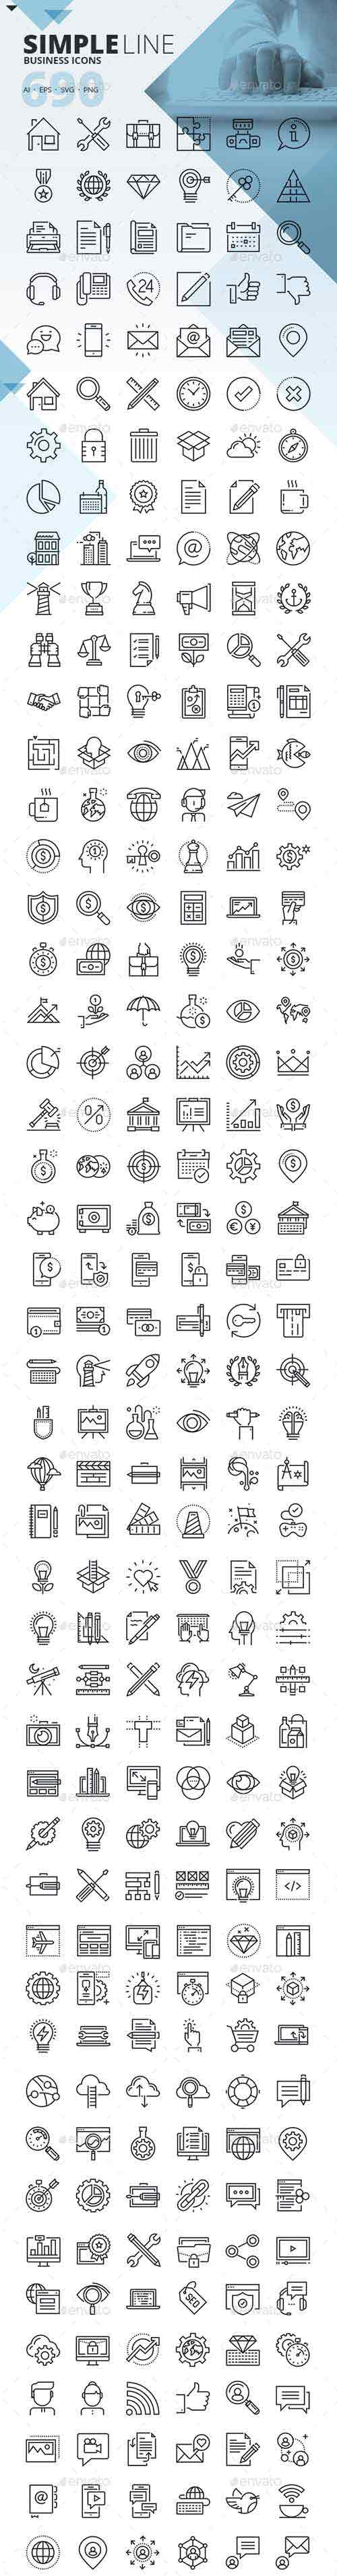 GR - Simple Icons 19371515